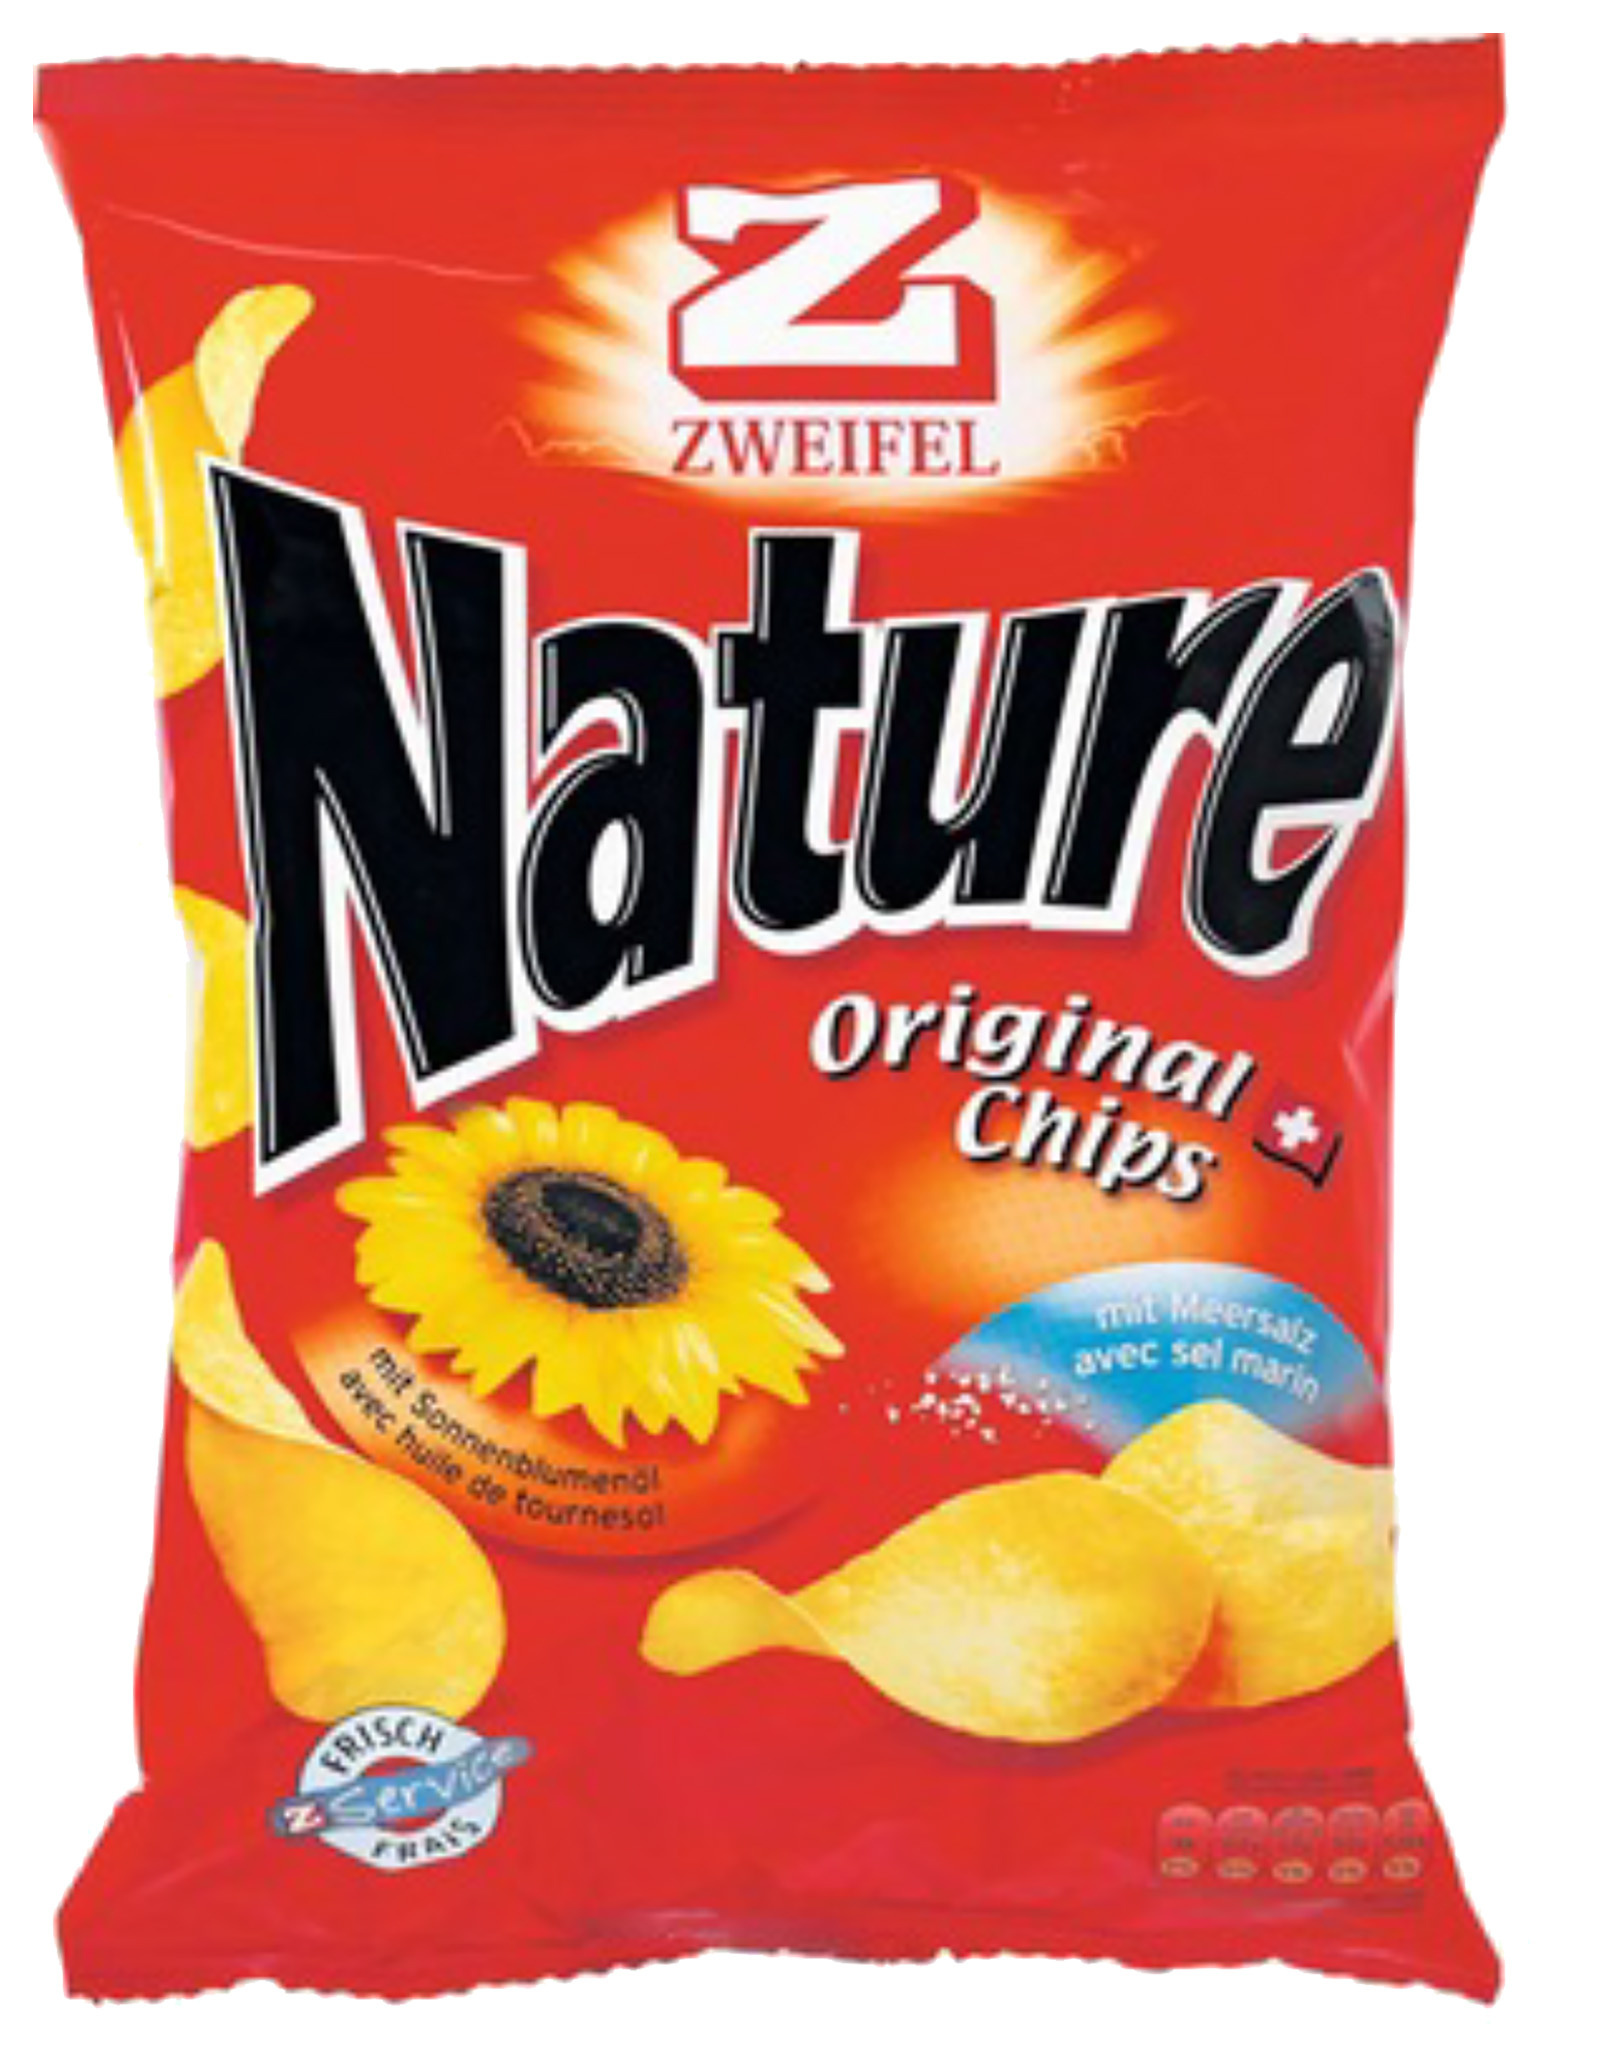 Zweifel Nature - Product